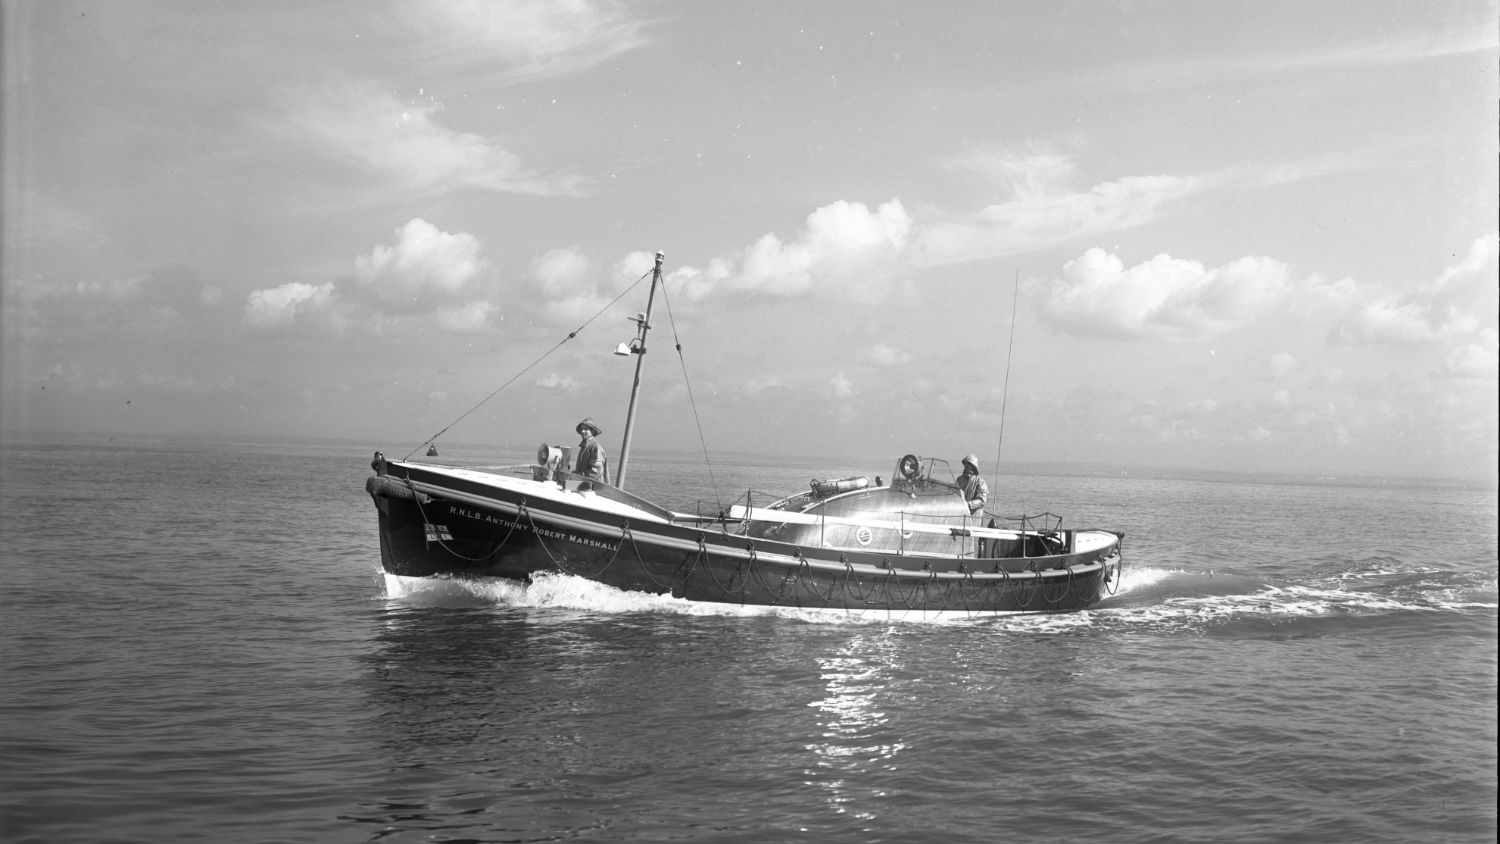 Black and white image of Rhyl lifeboat, Anthony and Robert Marshall, while on trials